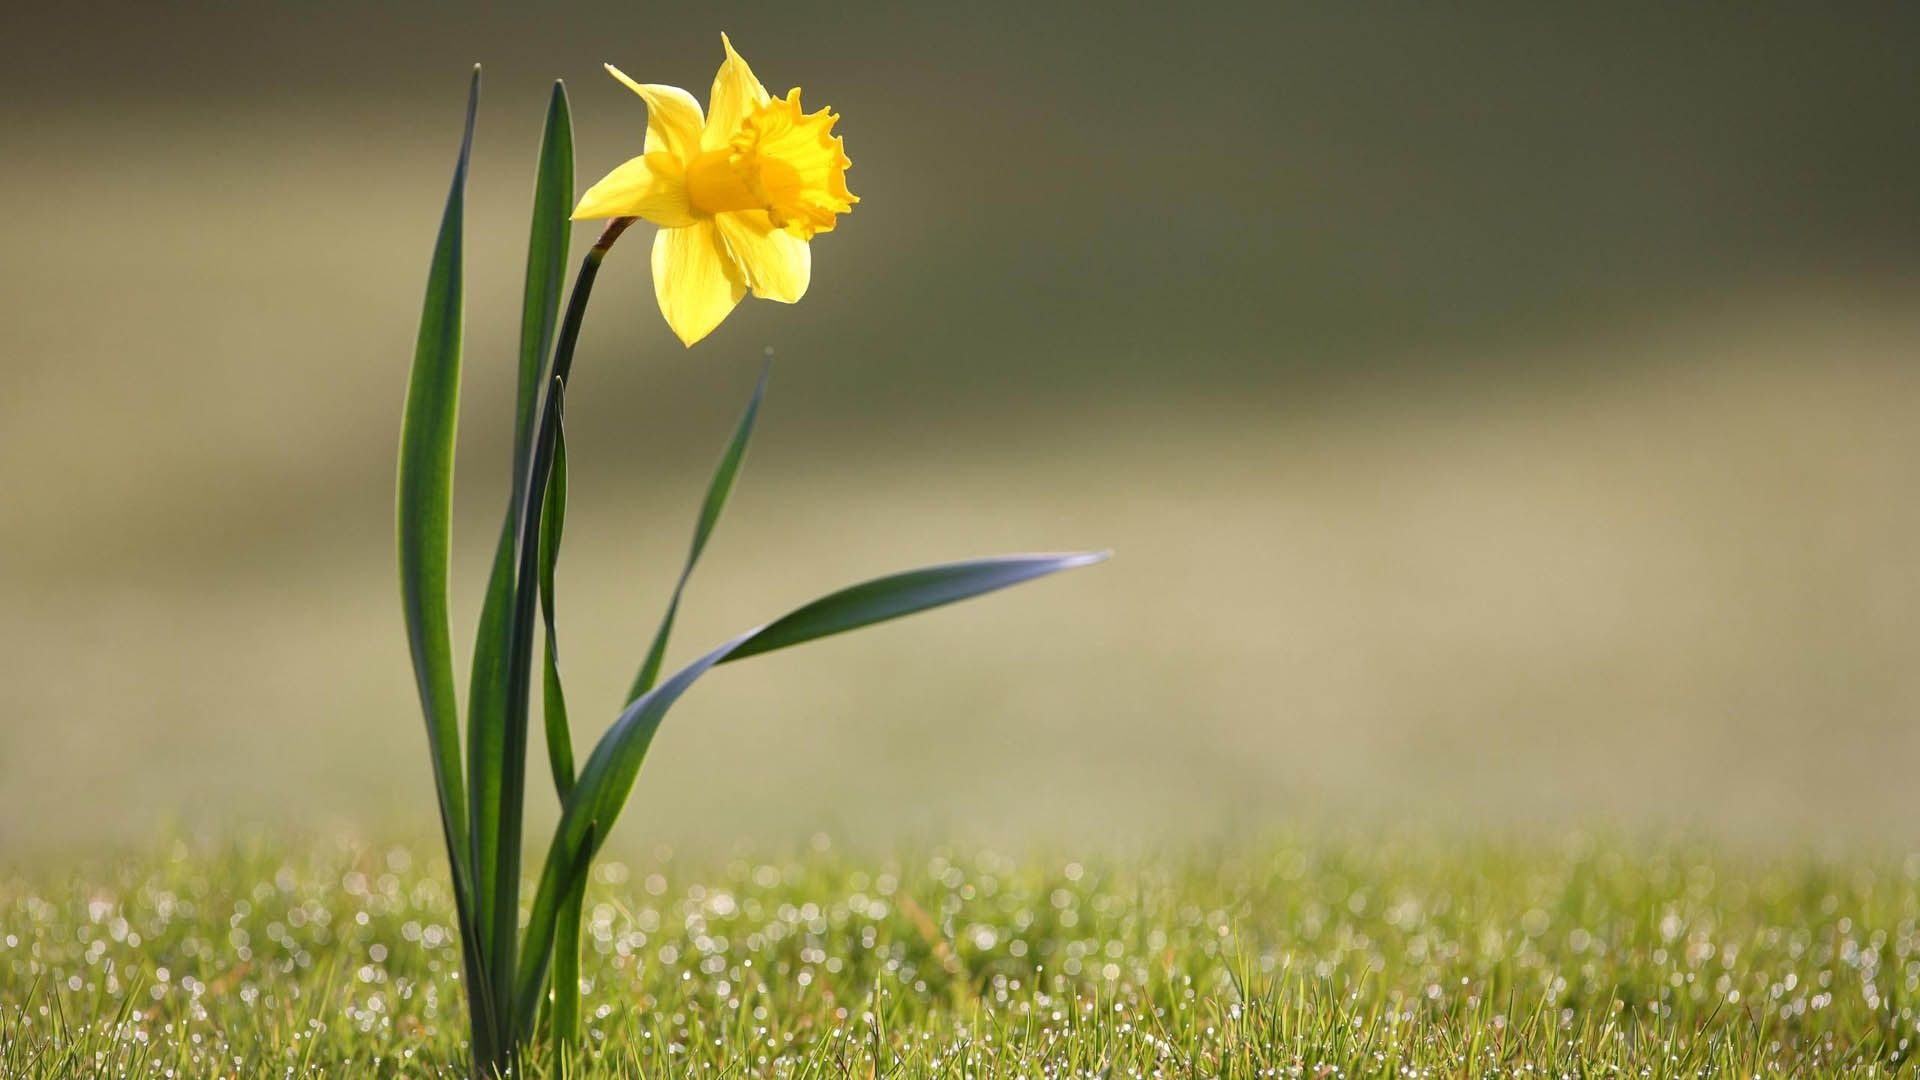 1920x1080 Wallpaper Daffodil Flower Yellow Stem Daffodils Daffodil Flower Plants